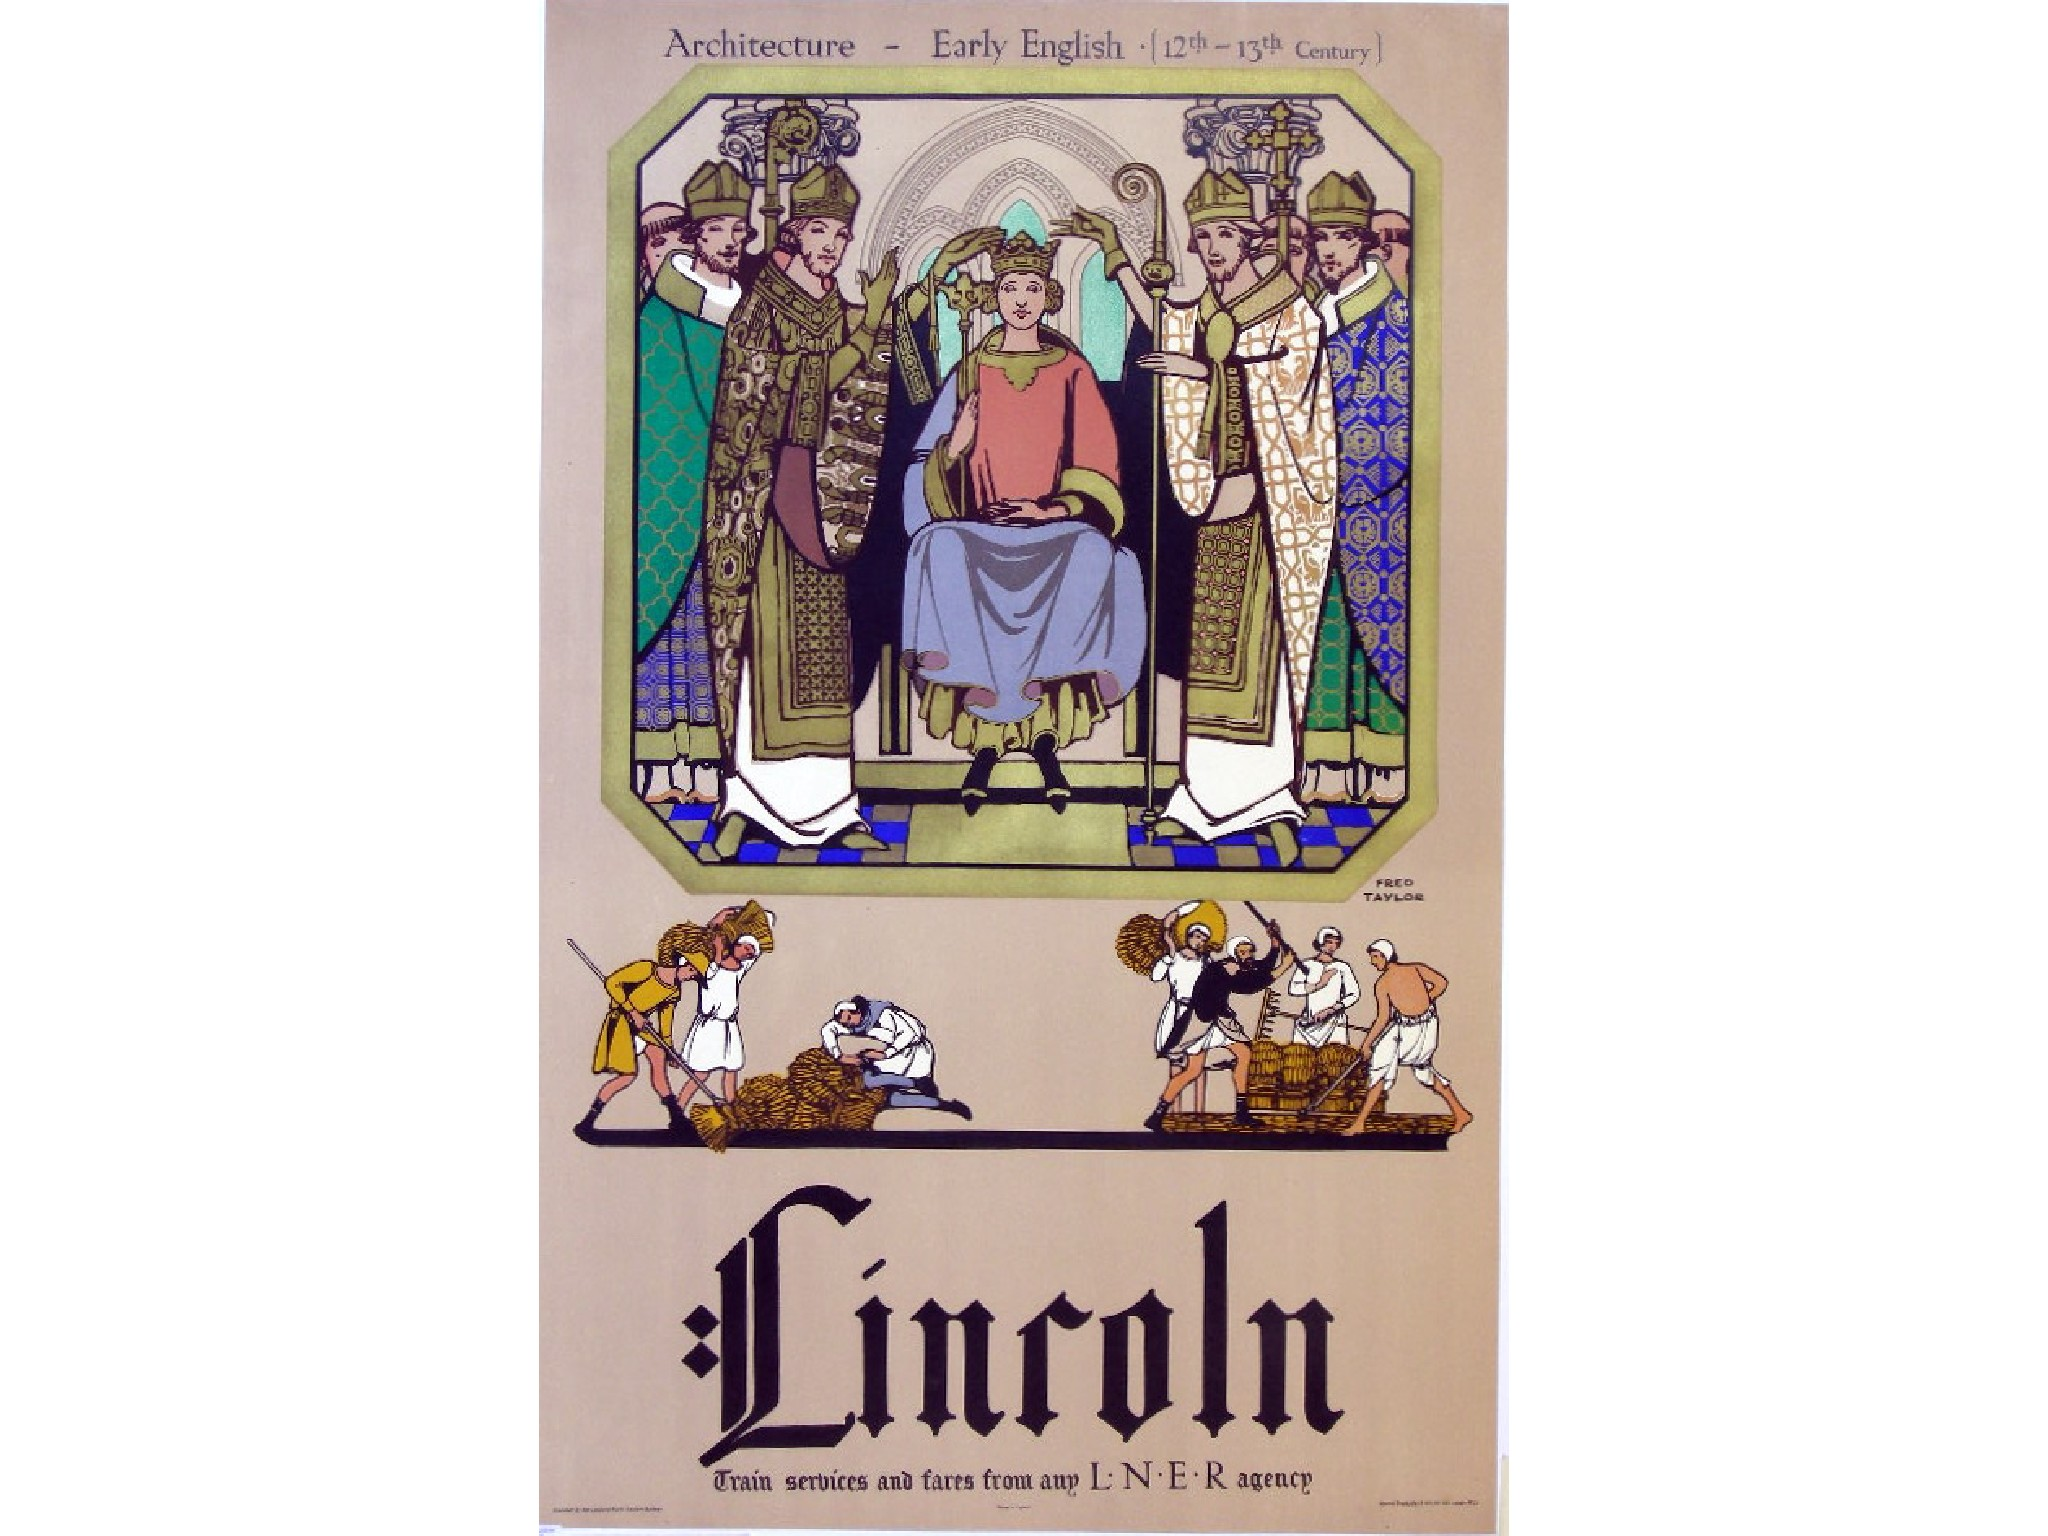 Fred Taylor Lincoln Cathedral Railway Poster Early English Architecture